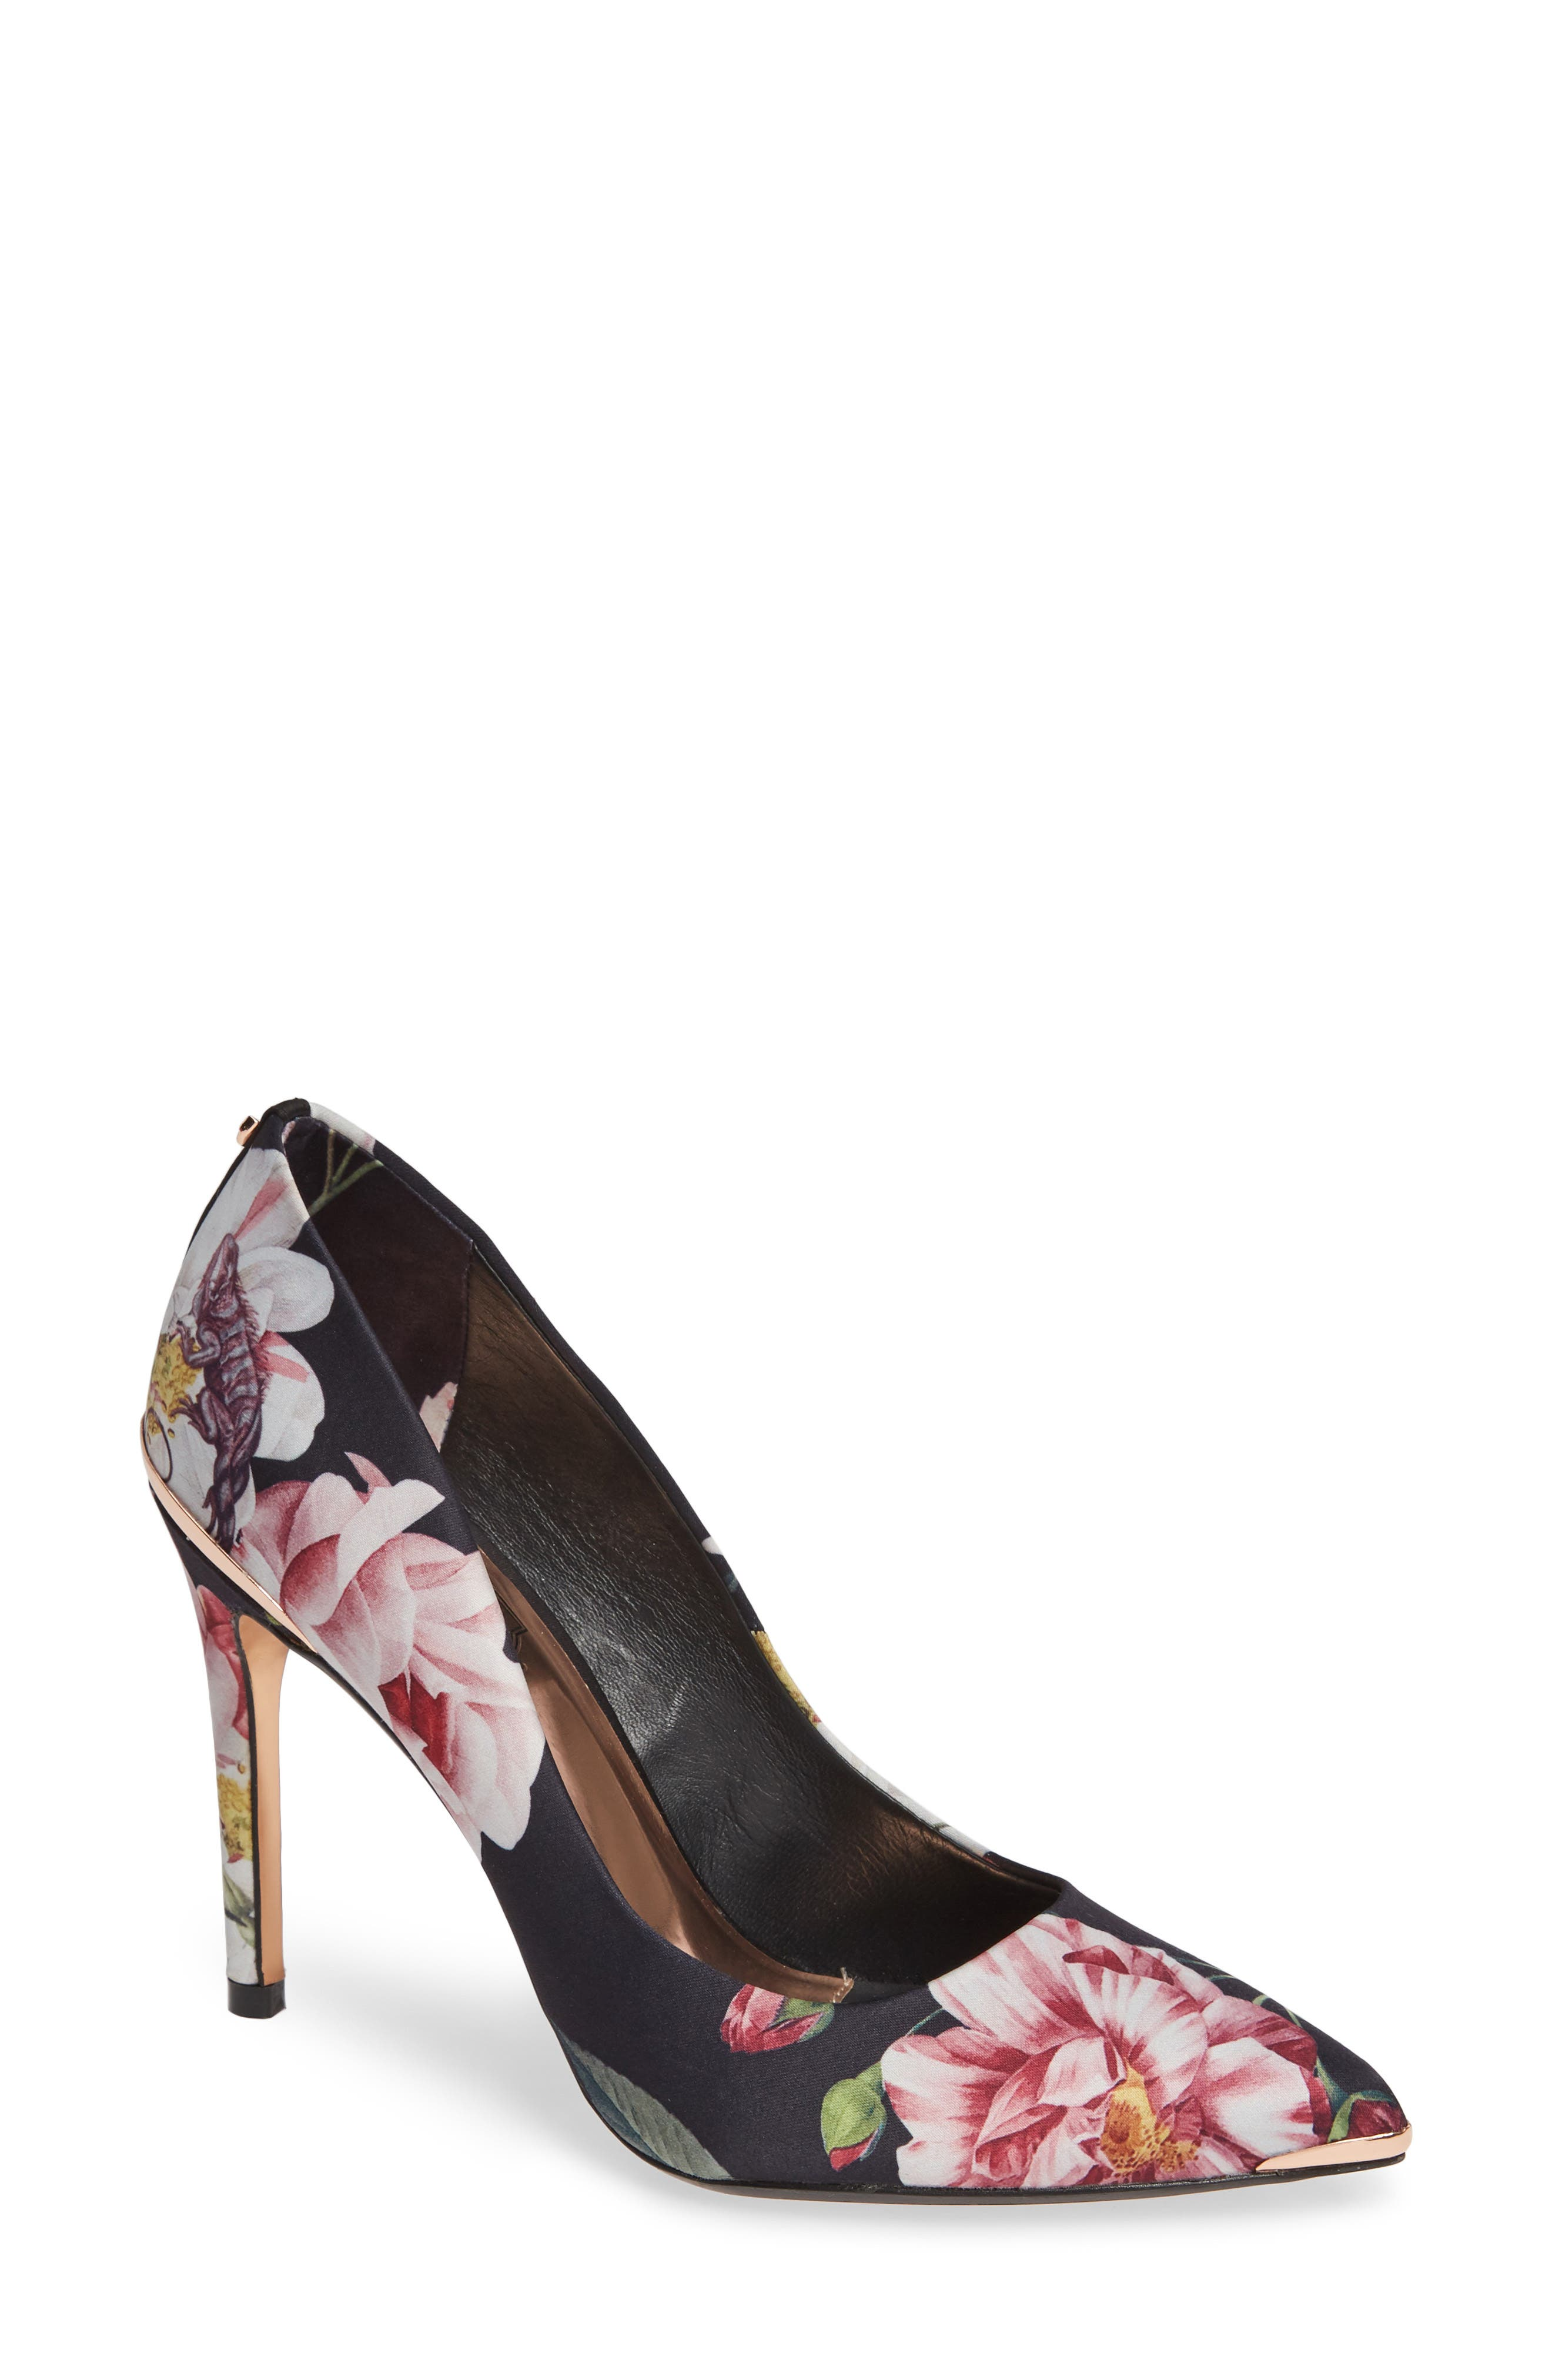 Image of Ted Baker London Izibelp Pump